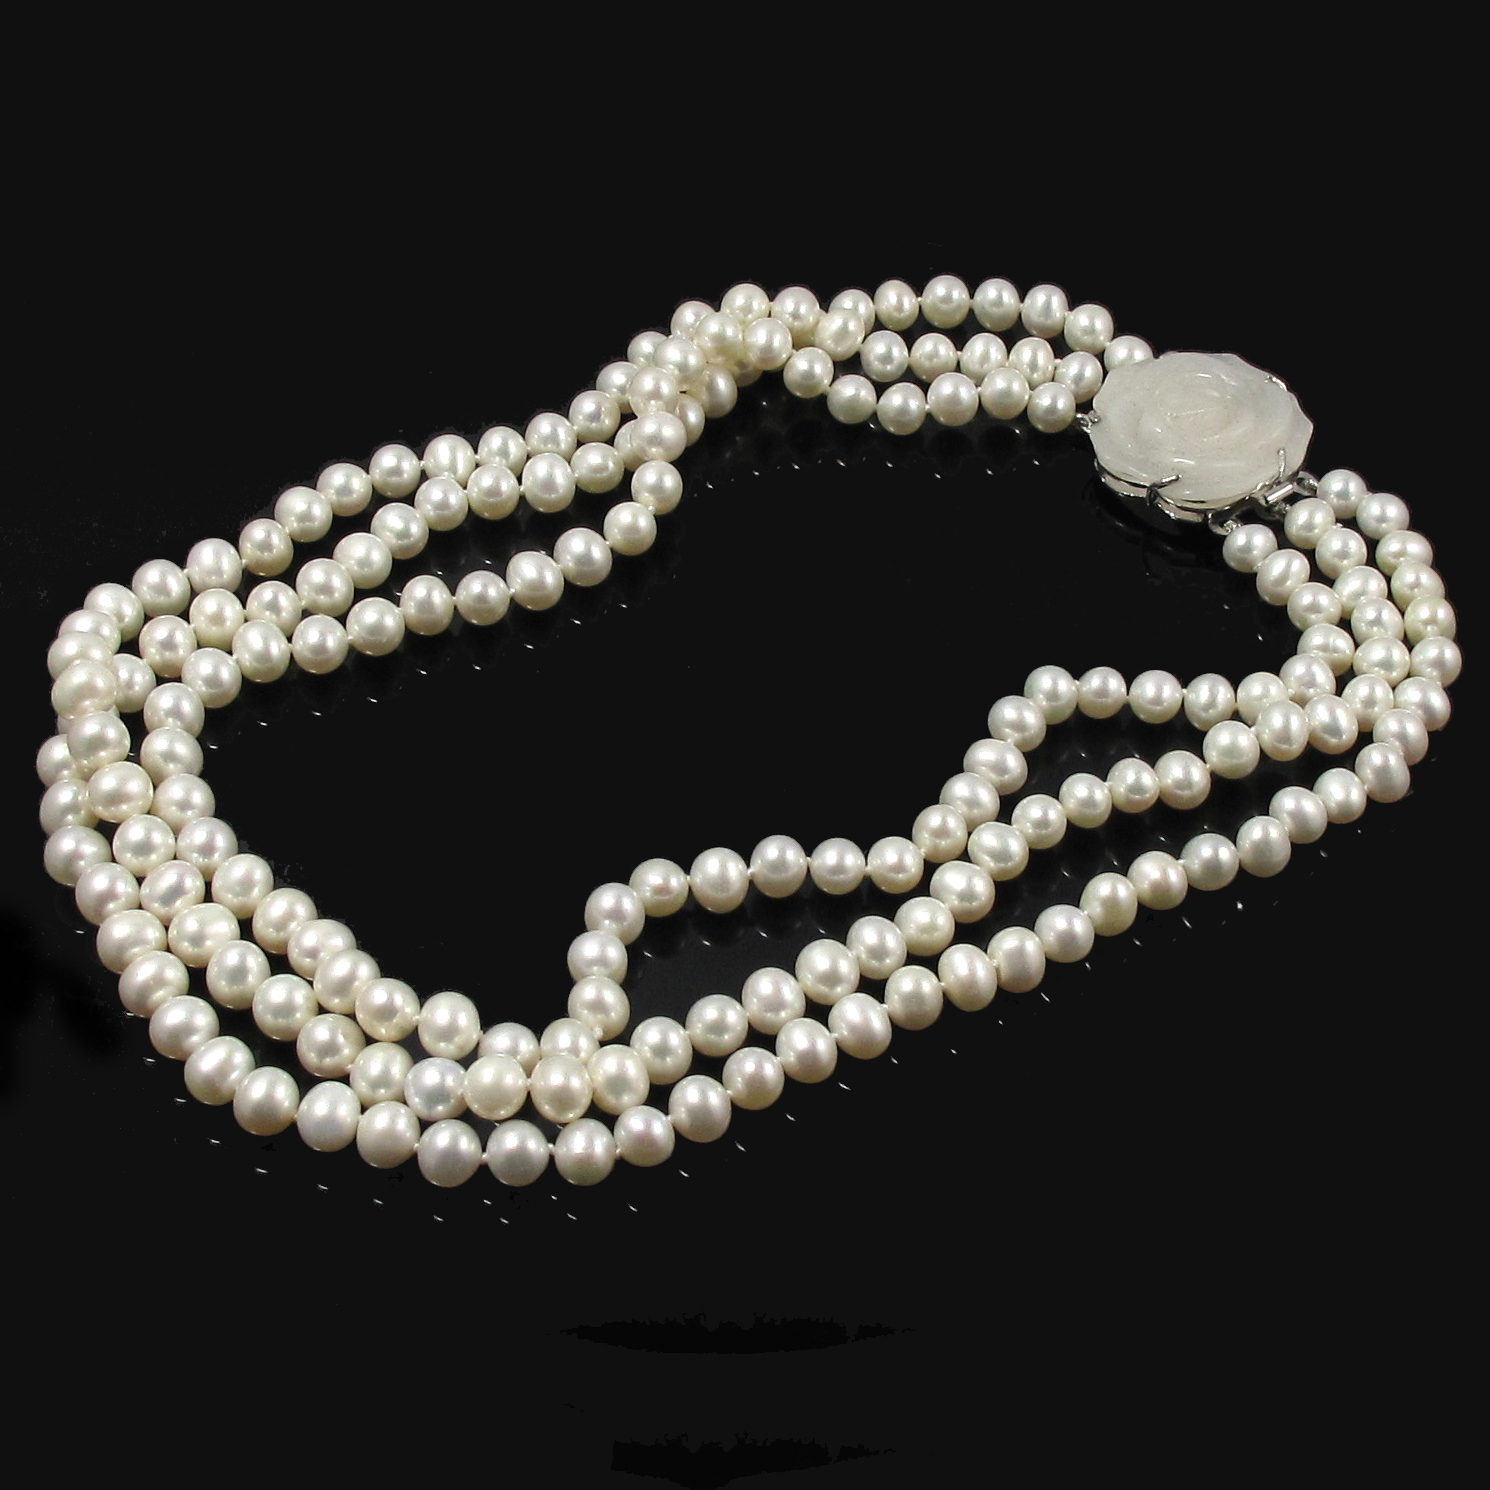 necklaces jdec set pearl combos bring combo jewellery jpearl com pearls jpearls collection pid products sizzling amazing special